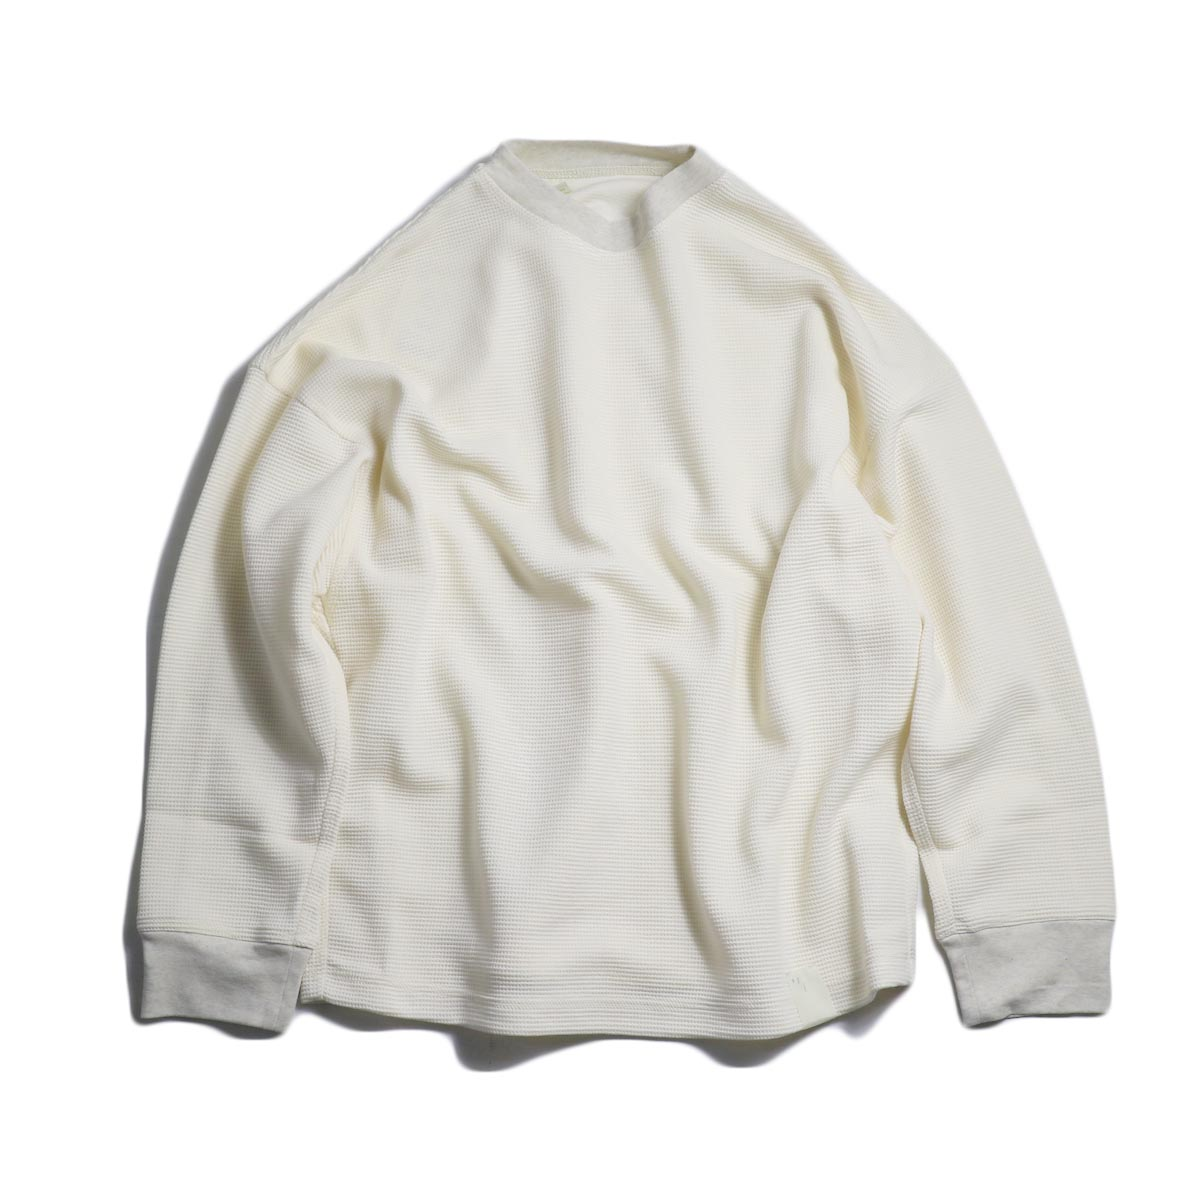 N.HOOLYWOOD / 182-CS07-013-pieces WAFFLE SWEAT CUT SEW -Ivory